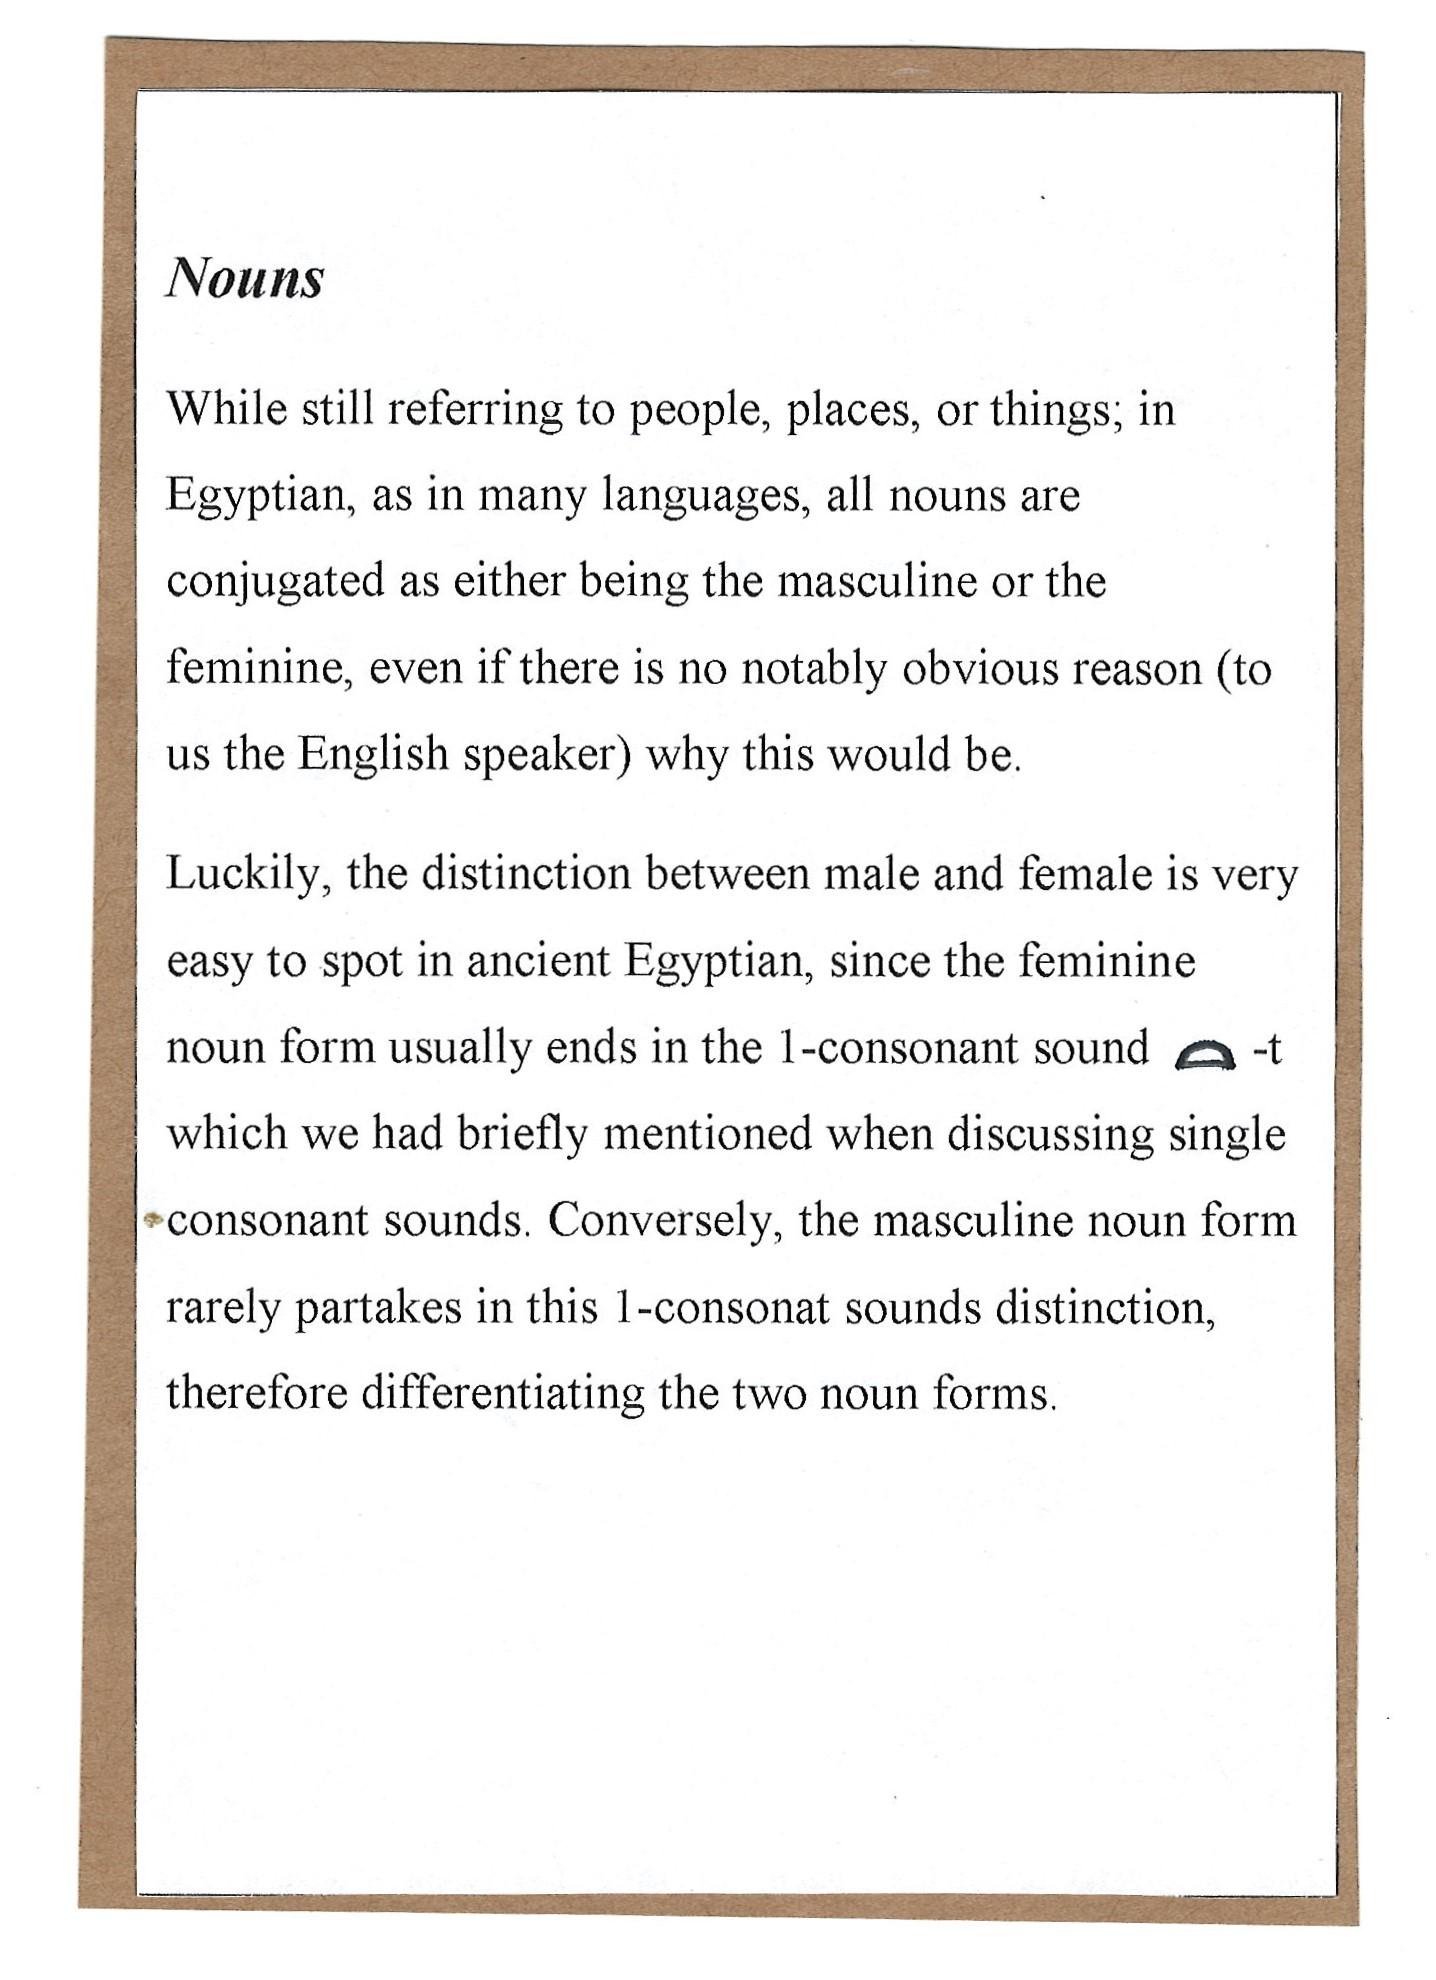 Page 10. Nouns in Egyptian Hieroglyphs and how that may differ from our own understanding in the English language.